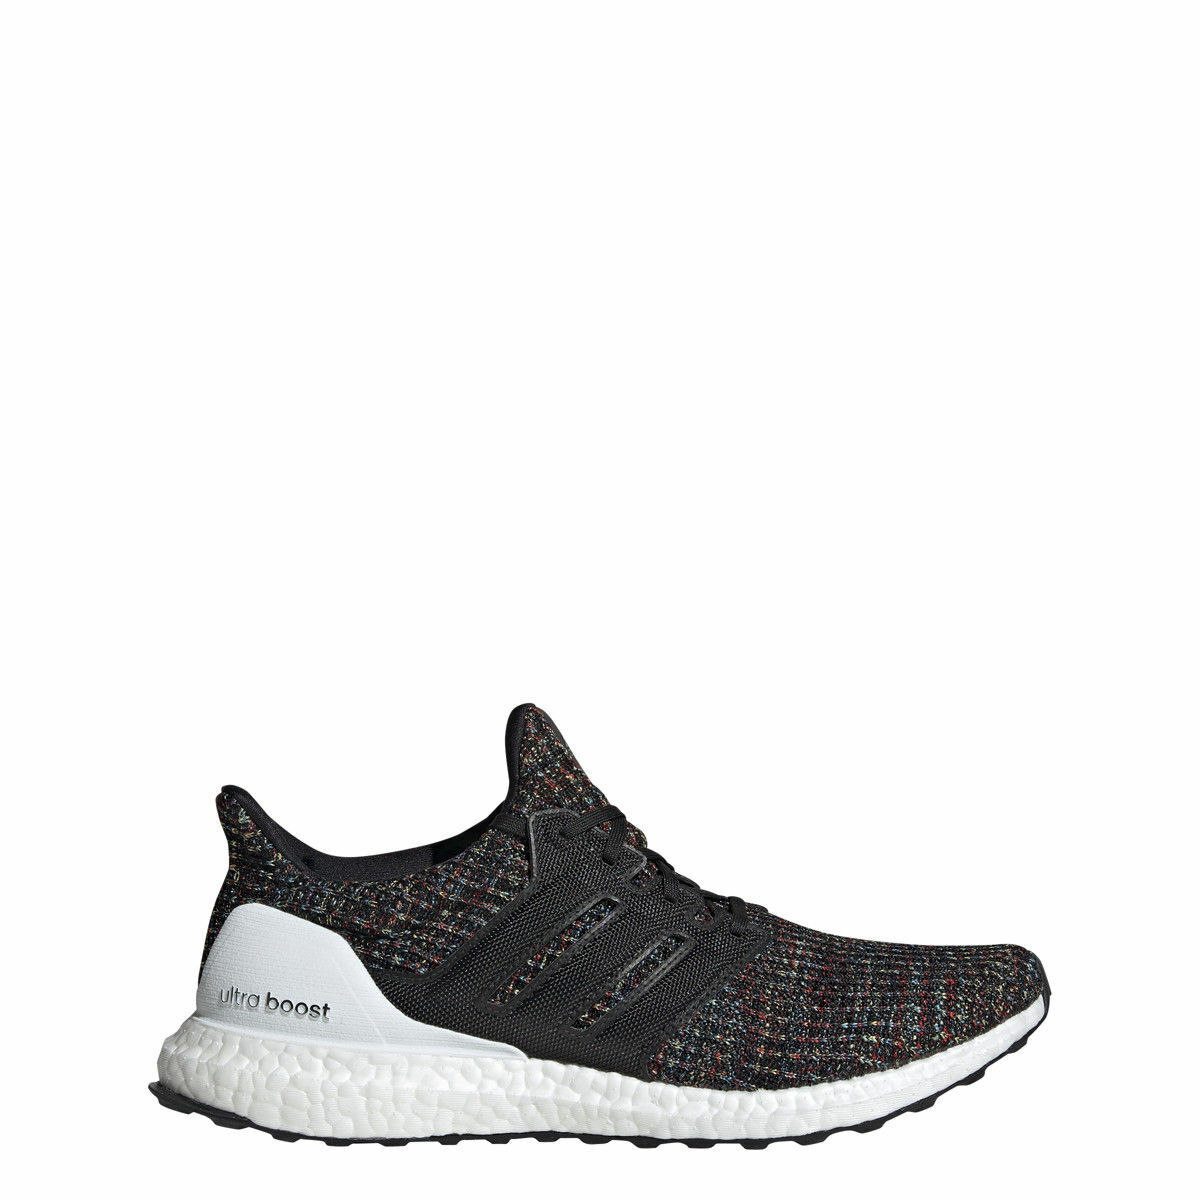 Adidas Men's Ultra Boost - NEW IN BOX - FREE SHIPPING - Black / White - F35232 +